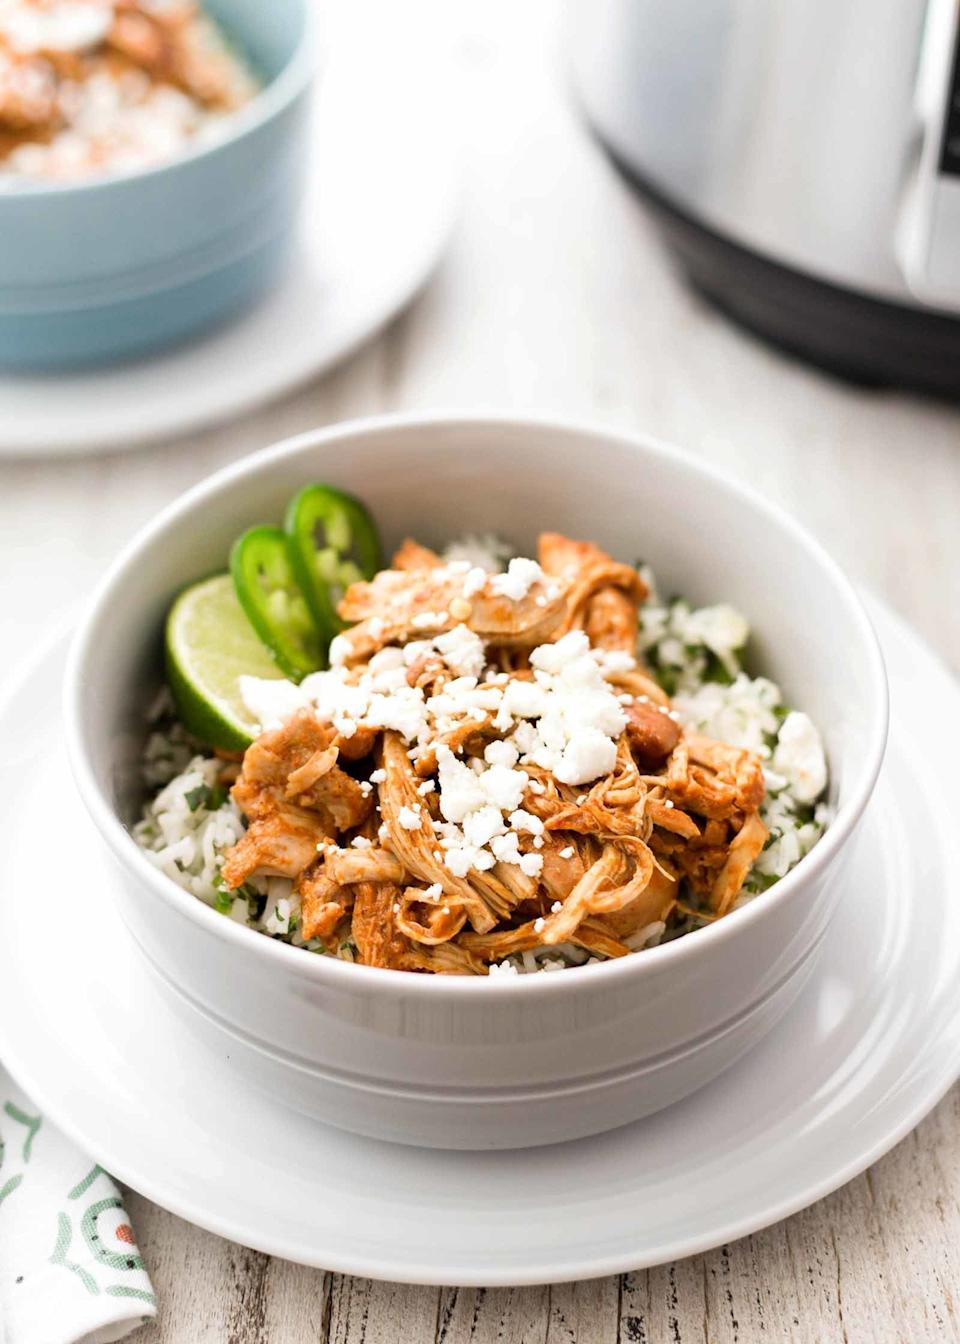 """<strong>Get the <a href=""""https://www.simplyrecipes.com/recipes/pressure_cooker_chipotle_chicken_and_rice_bowls/"""" target=""""_blank"""">Pressure Cooker Chipotle Chicken and Rice Bowls</a> recipe from Simply Recipes</strong>"""